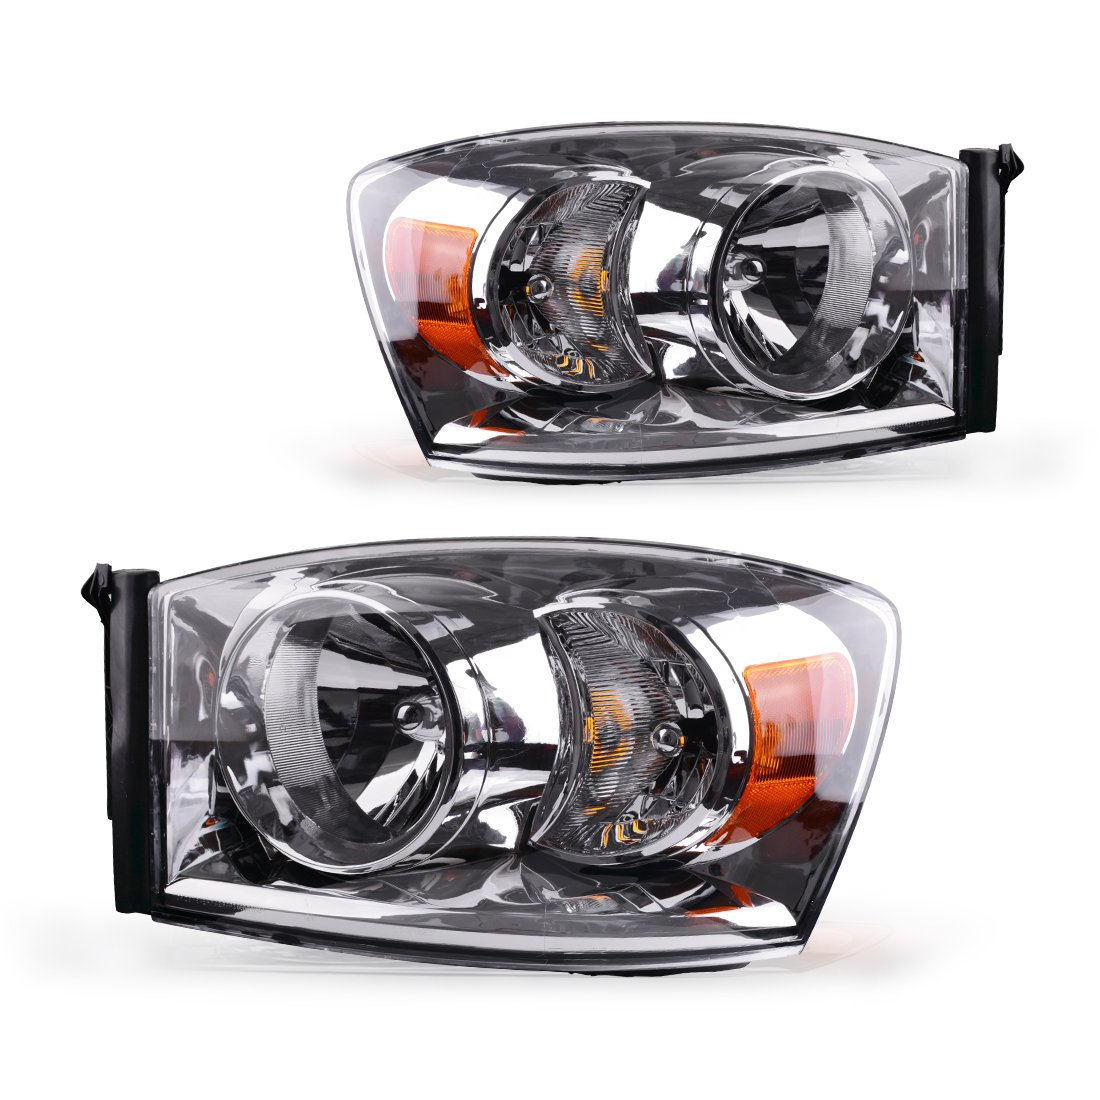 Headlight Assembly for 2006-2009 Dodge Ram 1500, 2500, 3500 Replacement Headlights